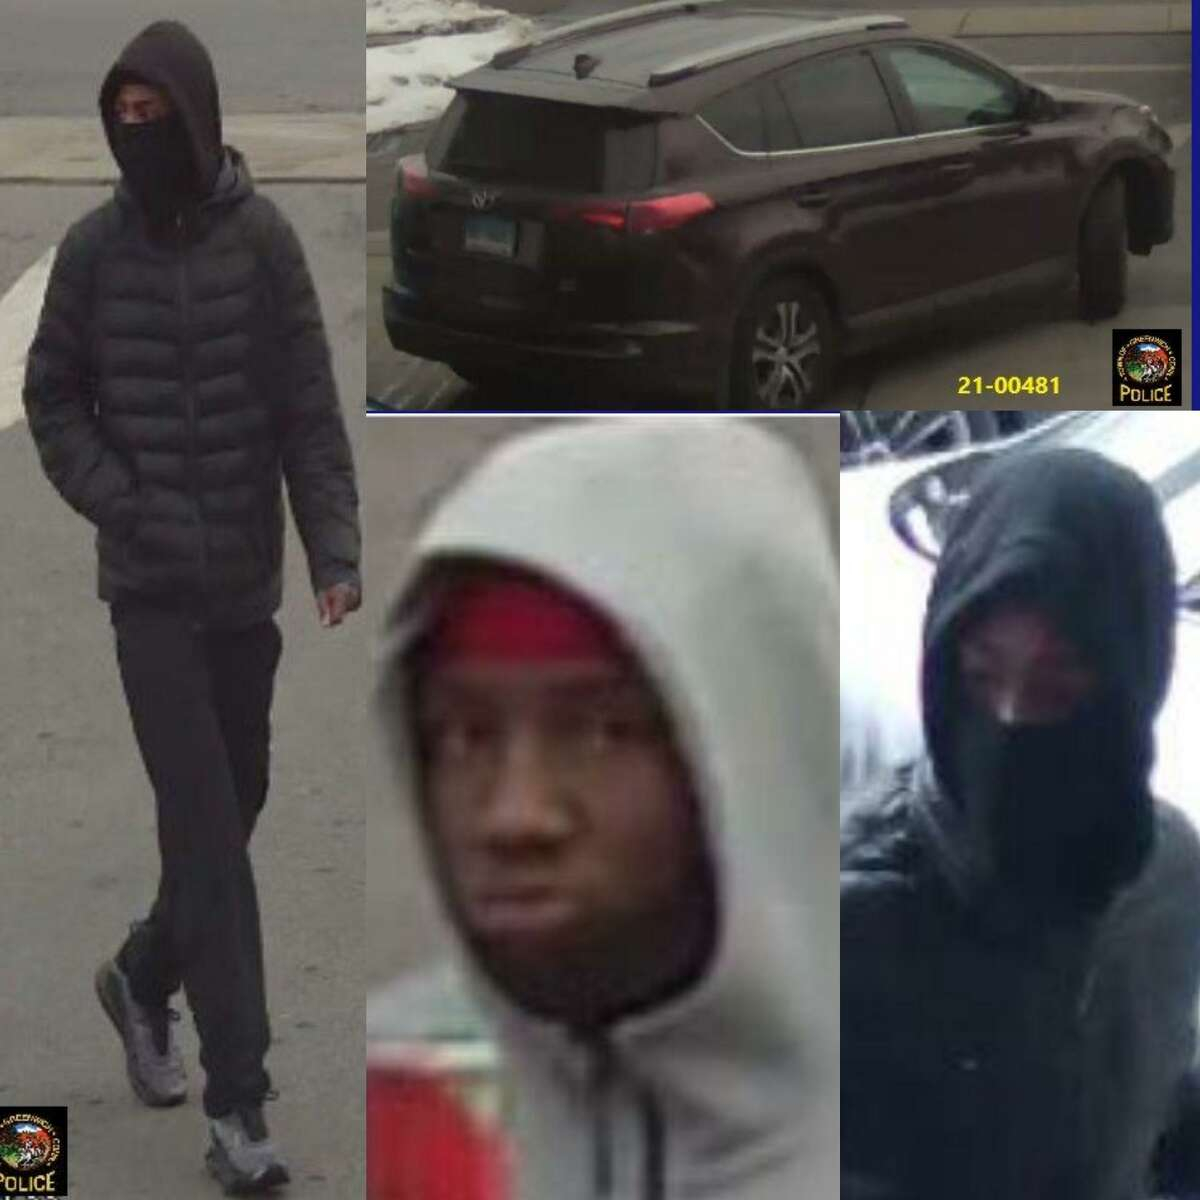 Police are seeking information on three suspects and a stolen car involved in a strong-arm robbery in Greenwich on Feb. 14.